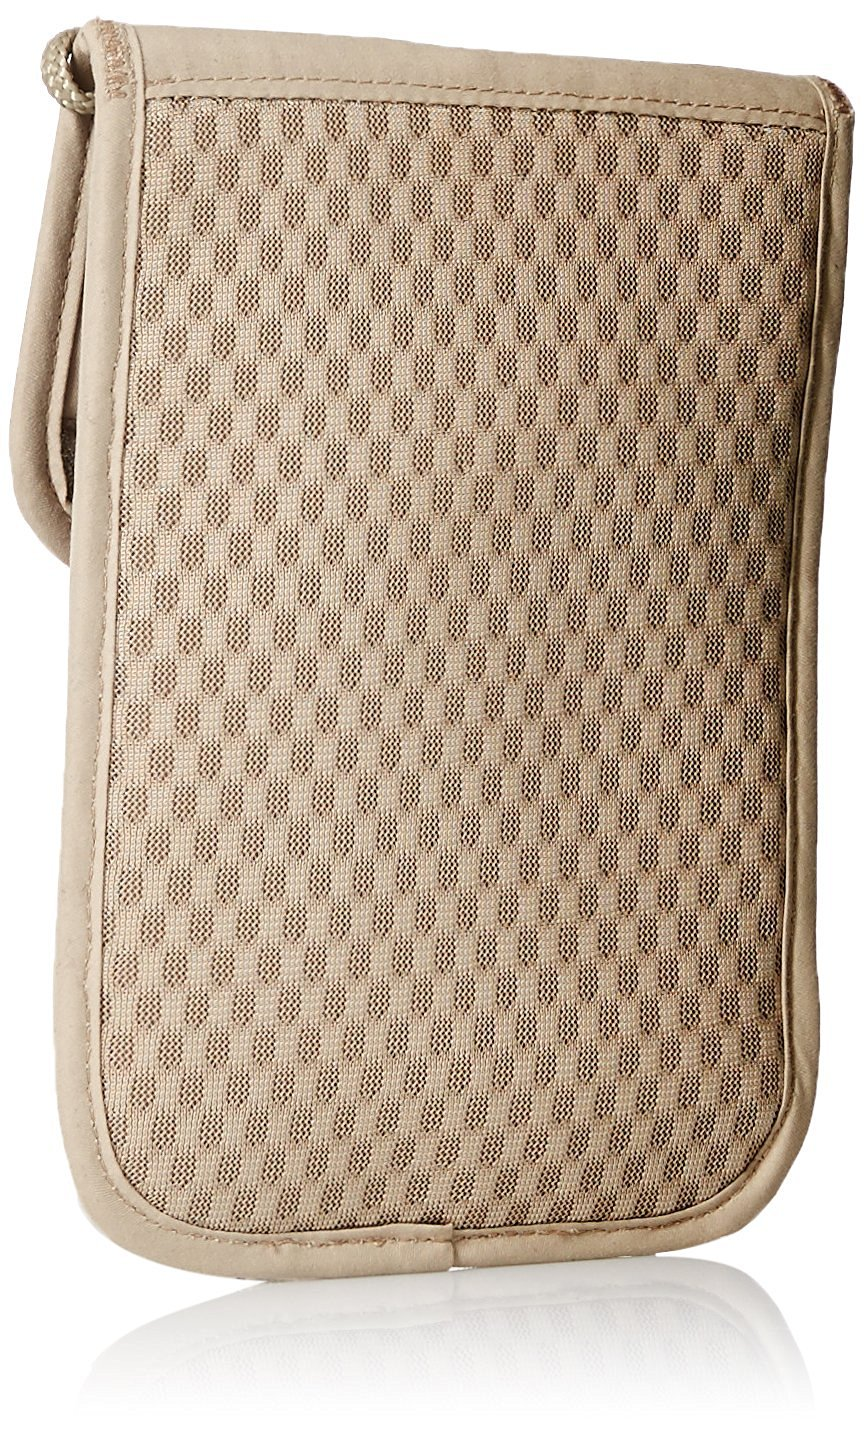 bc77940657e9 Victorinox Gear Deluxe Concealed Security pouch with RFID protection ...